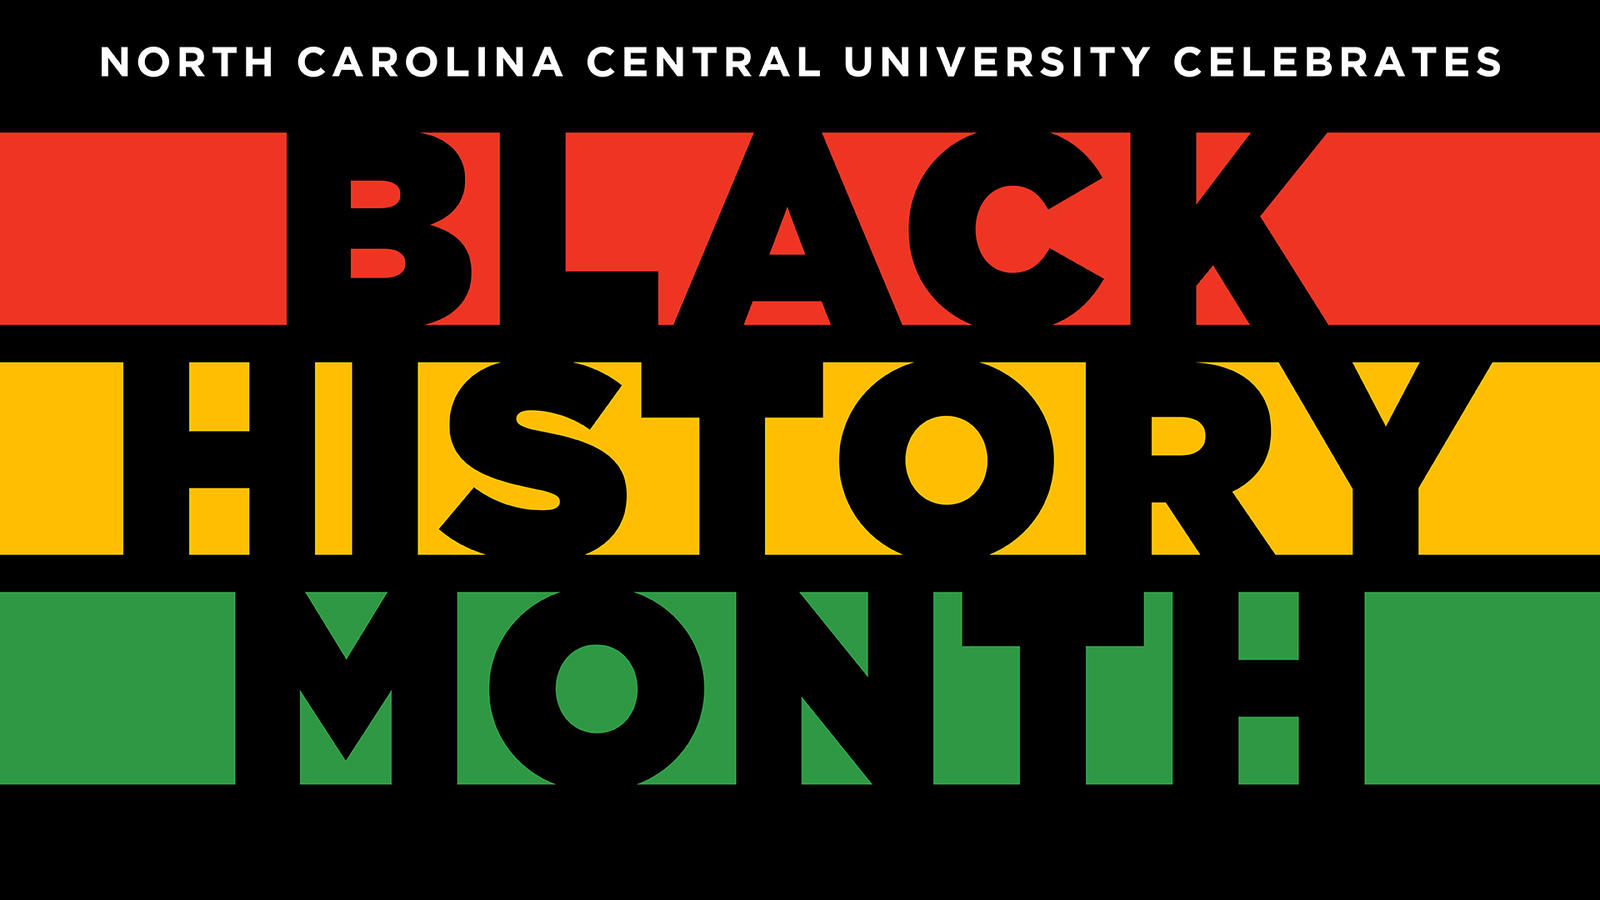 Nccu To Host 2019 Black History Month Activities North Carolina Central University